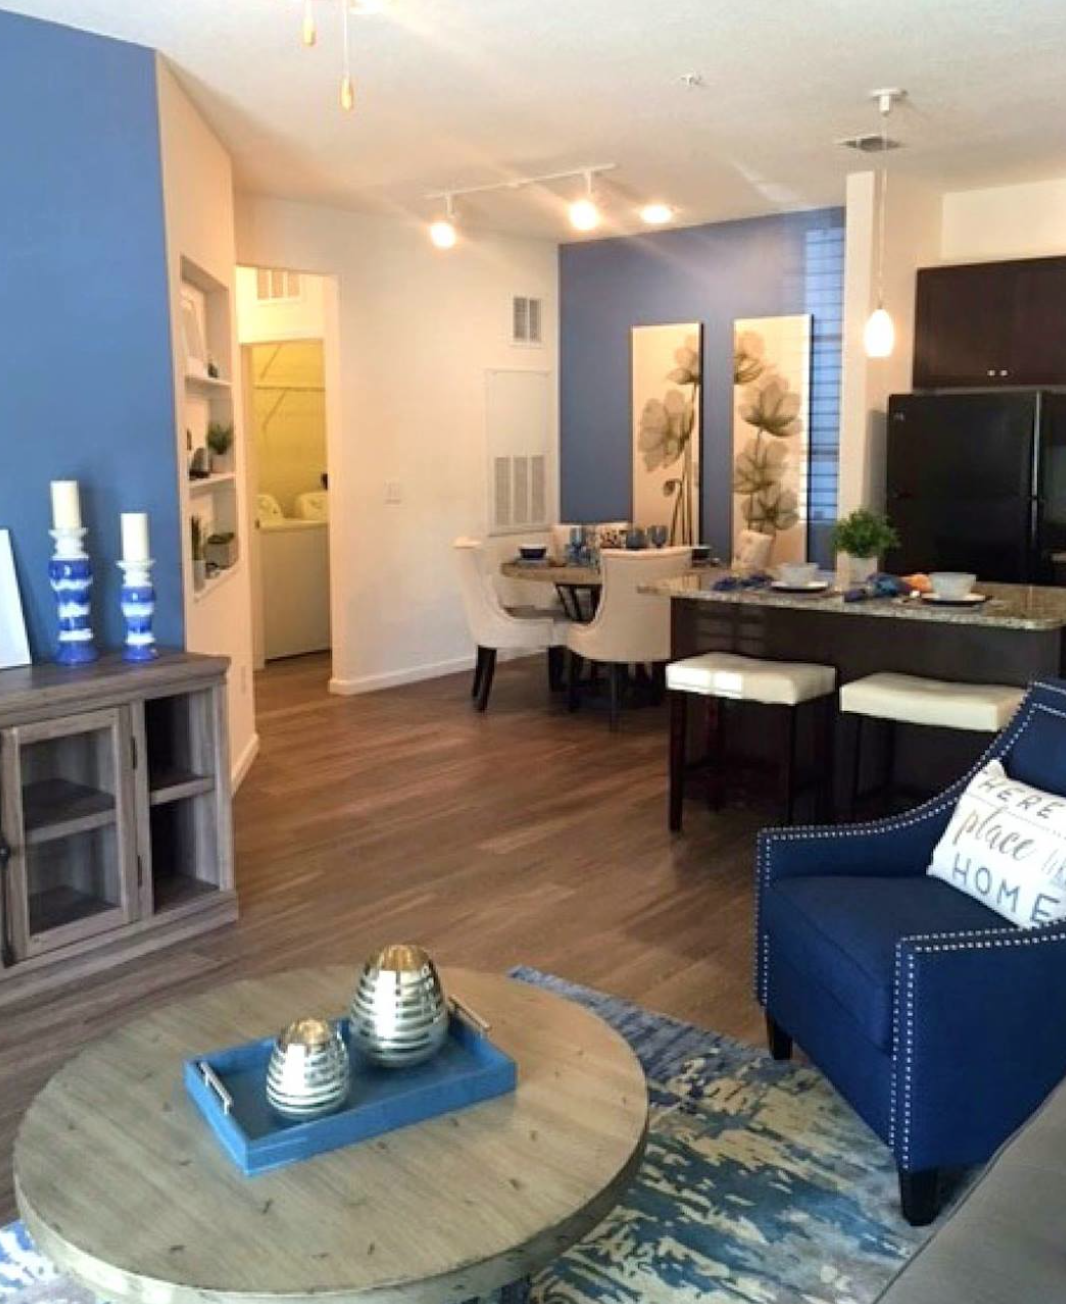 Brand New Apartment Homes In Clermont, FL The Oaks At